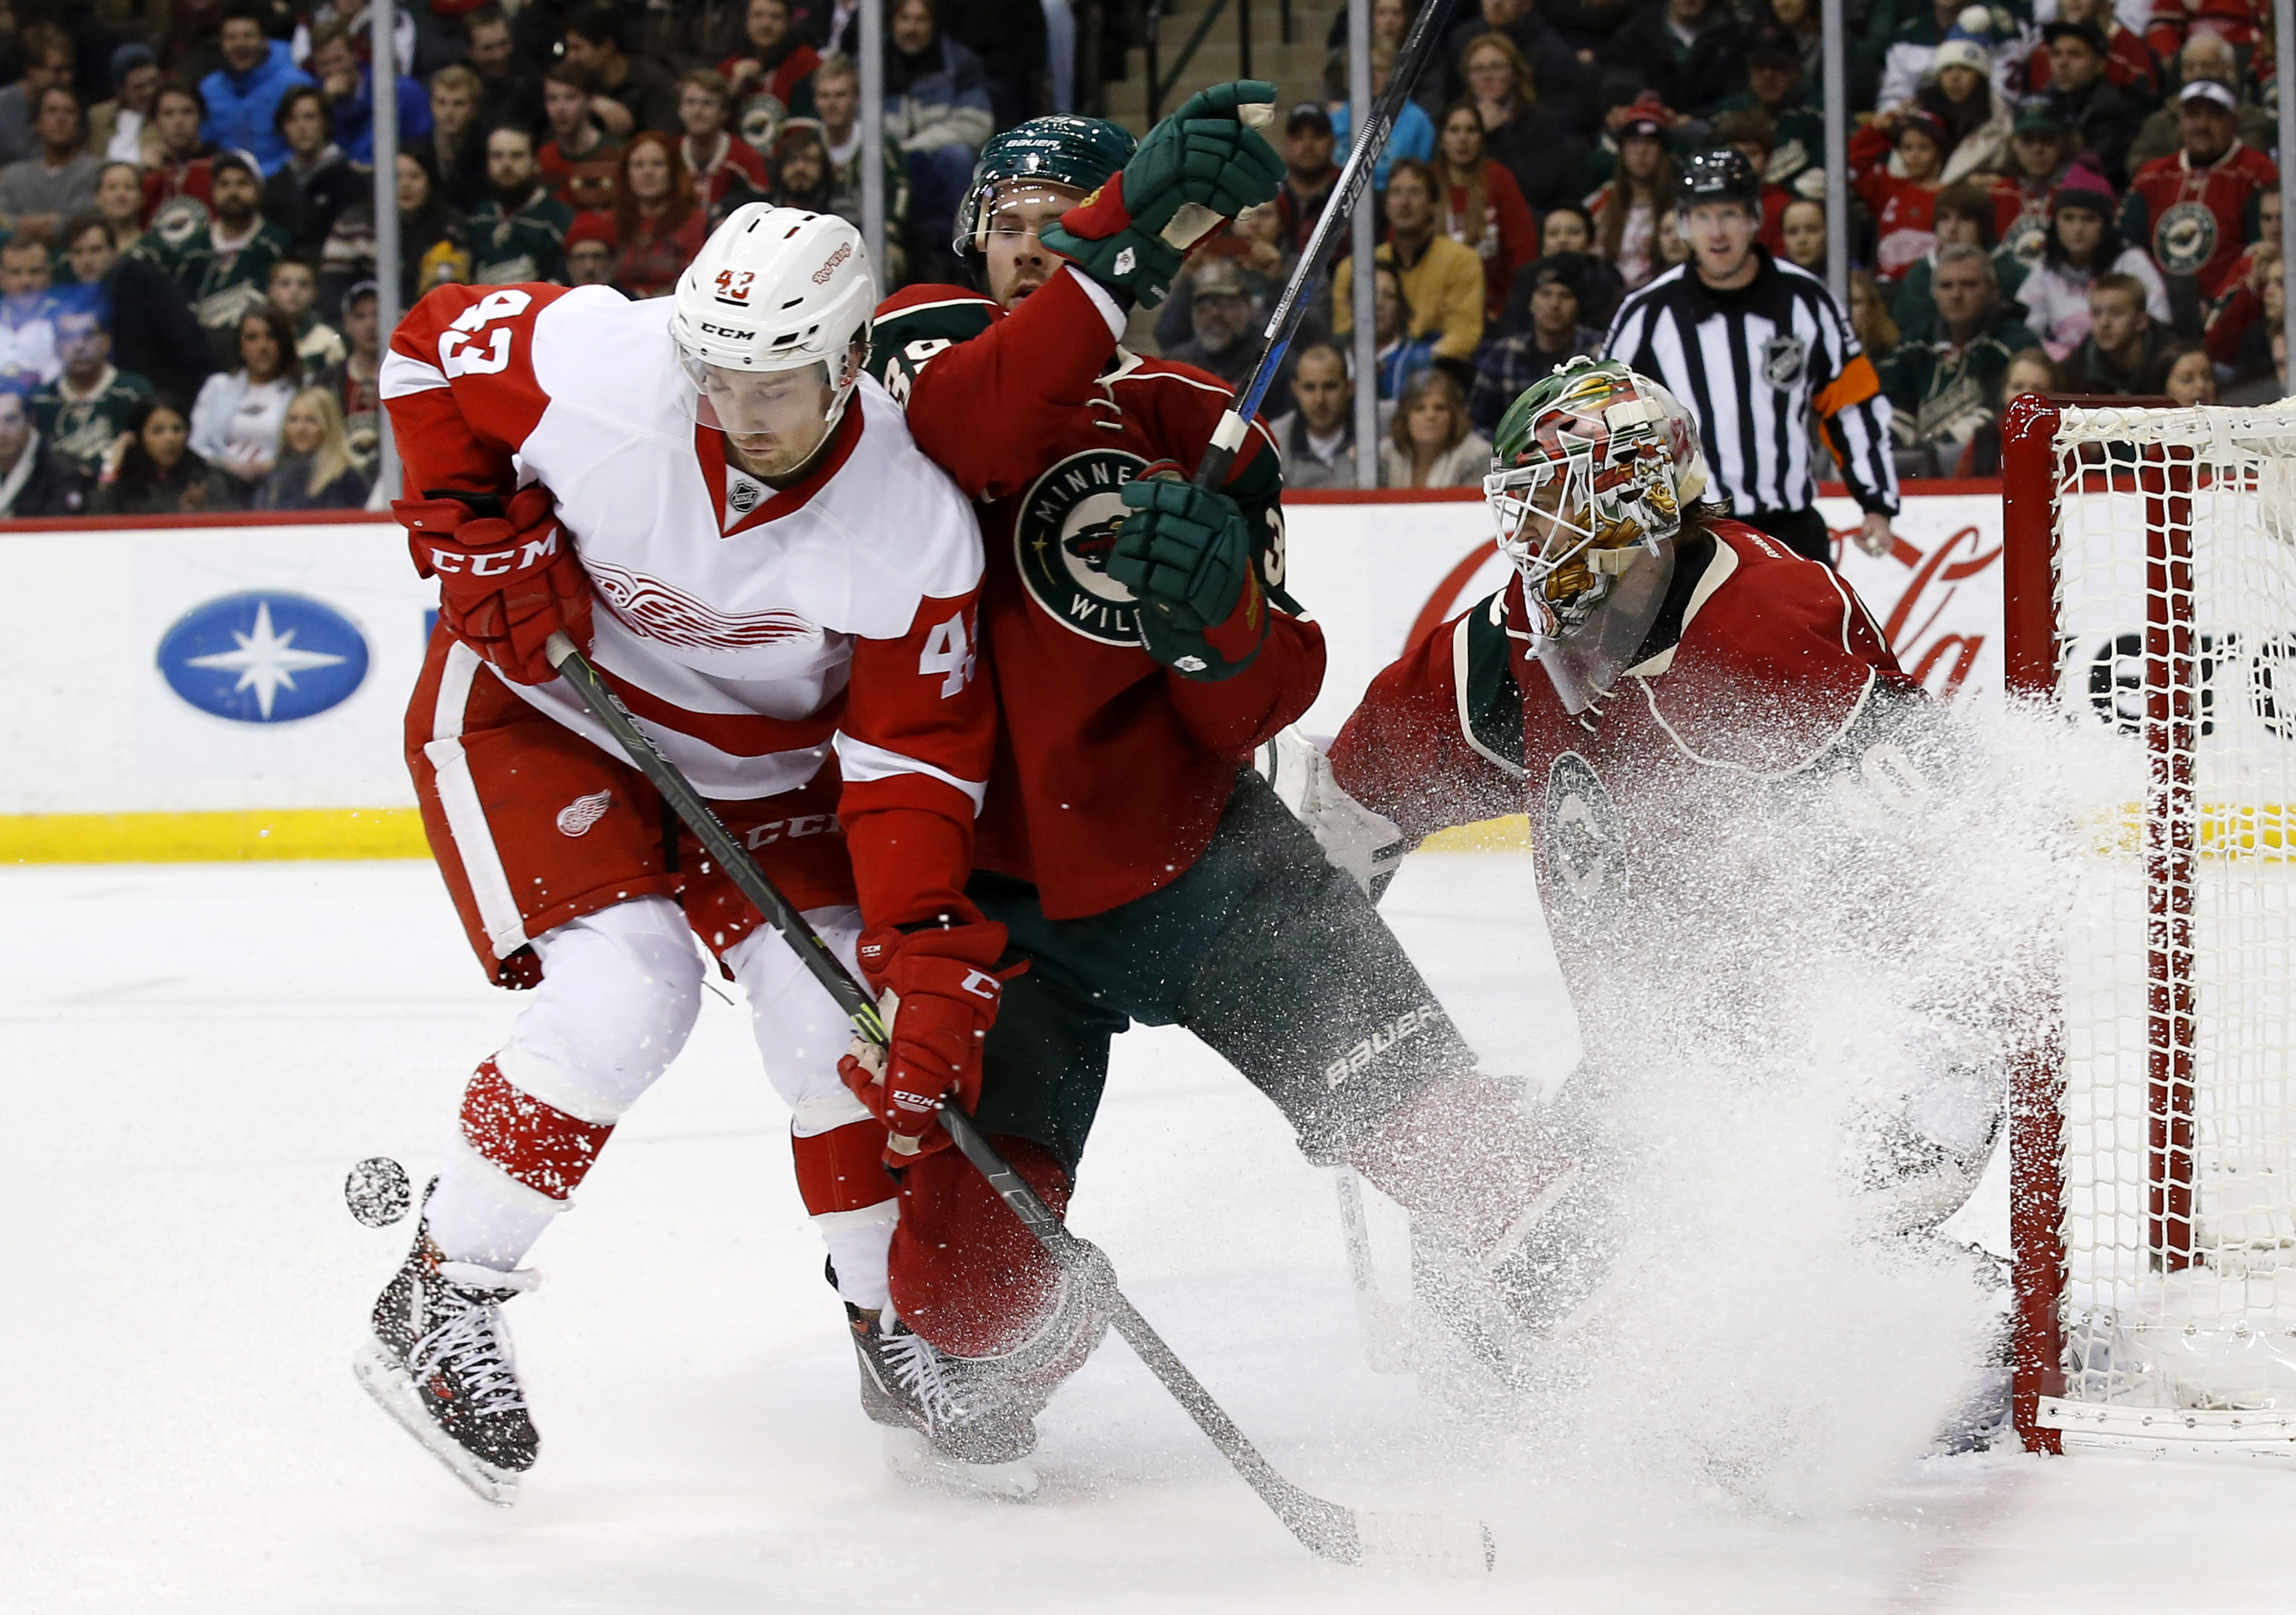 Detroit Red Wings center Darren Helm (43) and Minnesota Wild defenseman Nate Prosser compete for the puck in front of Wild goalie Devan Dubnyk during the second period of an NHL hockey game in St. Paul, Minn., Monday, Dec. 28, 2015. (AP Photo/Ann Heisenfe